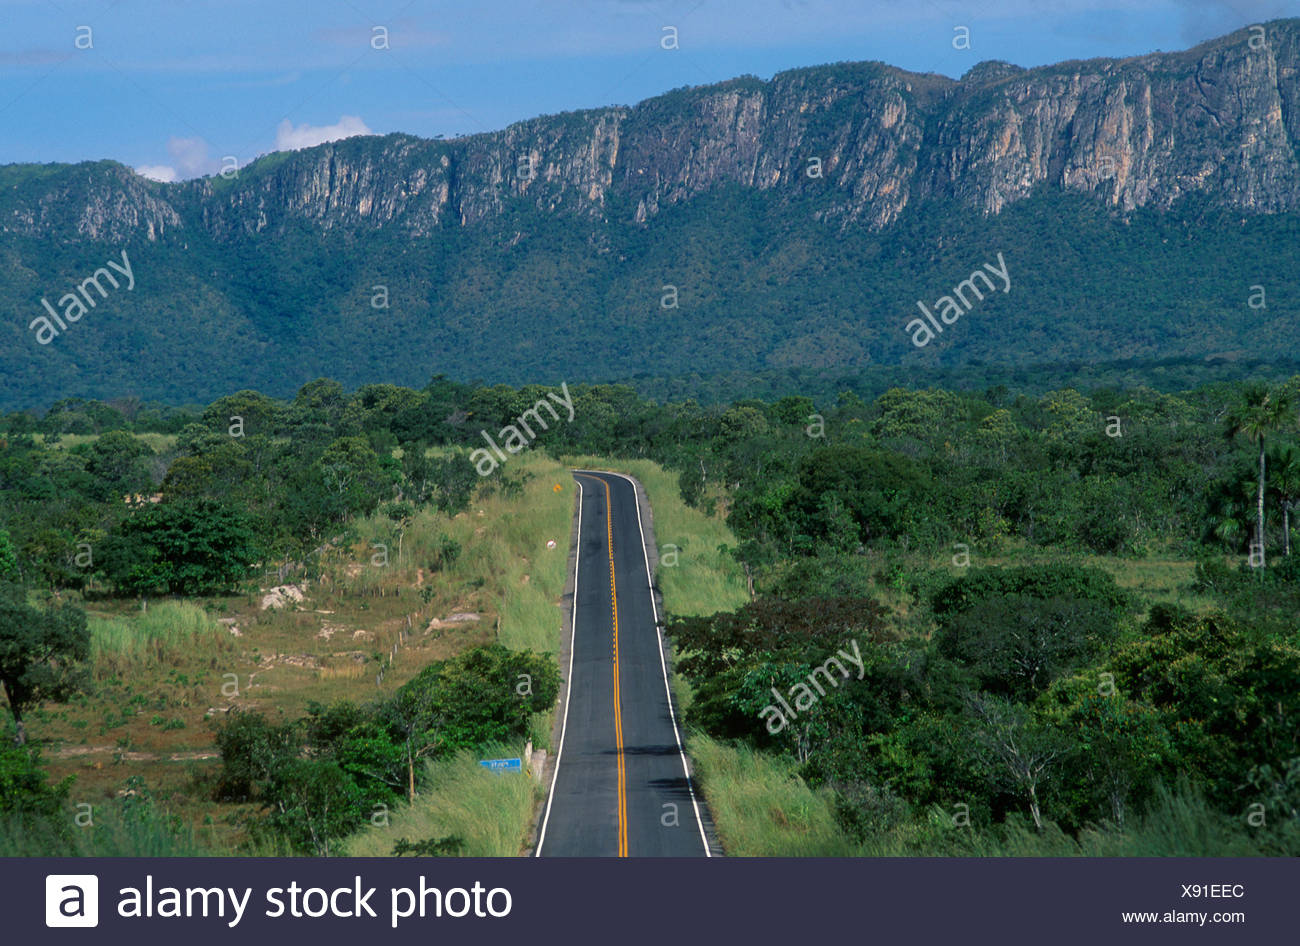 BR 010 Highway near Teresina de Goiás Road and mountains State Goiás Brazil - Stock Image